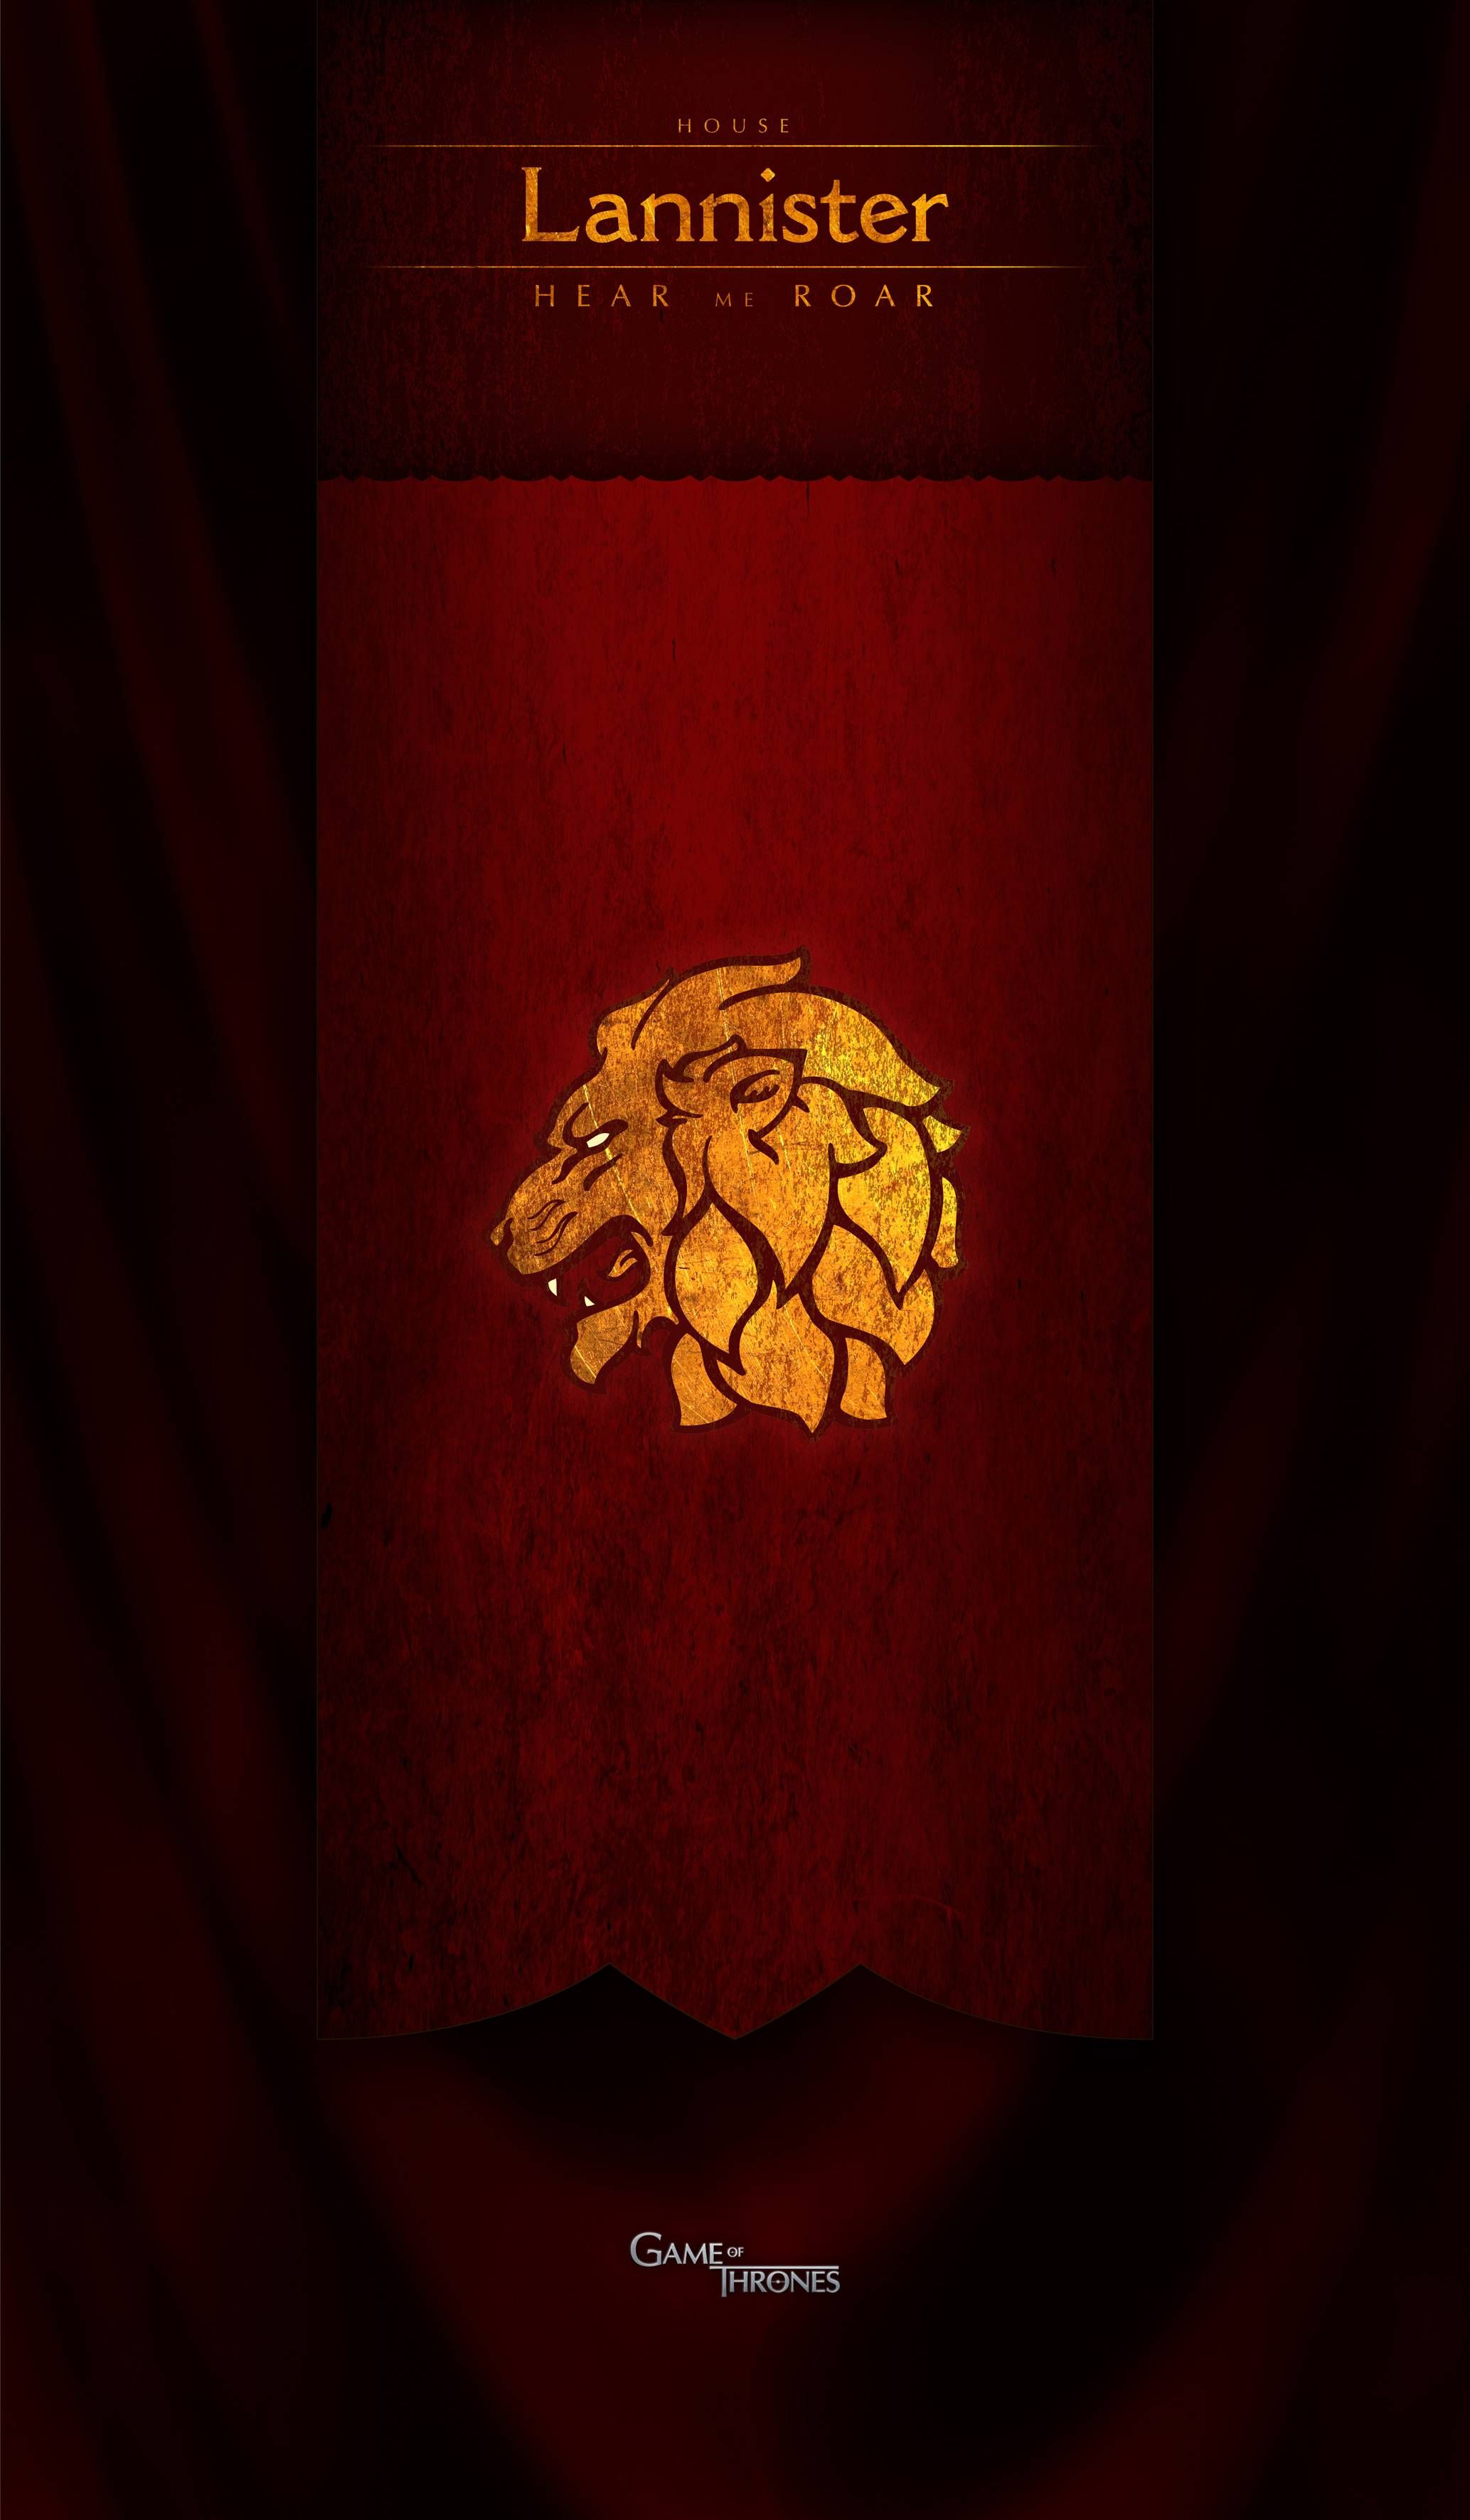 Game Of Thrones Banners Oc Imgur Herois Ilustracao